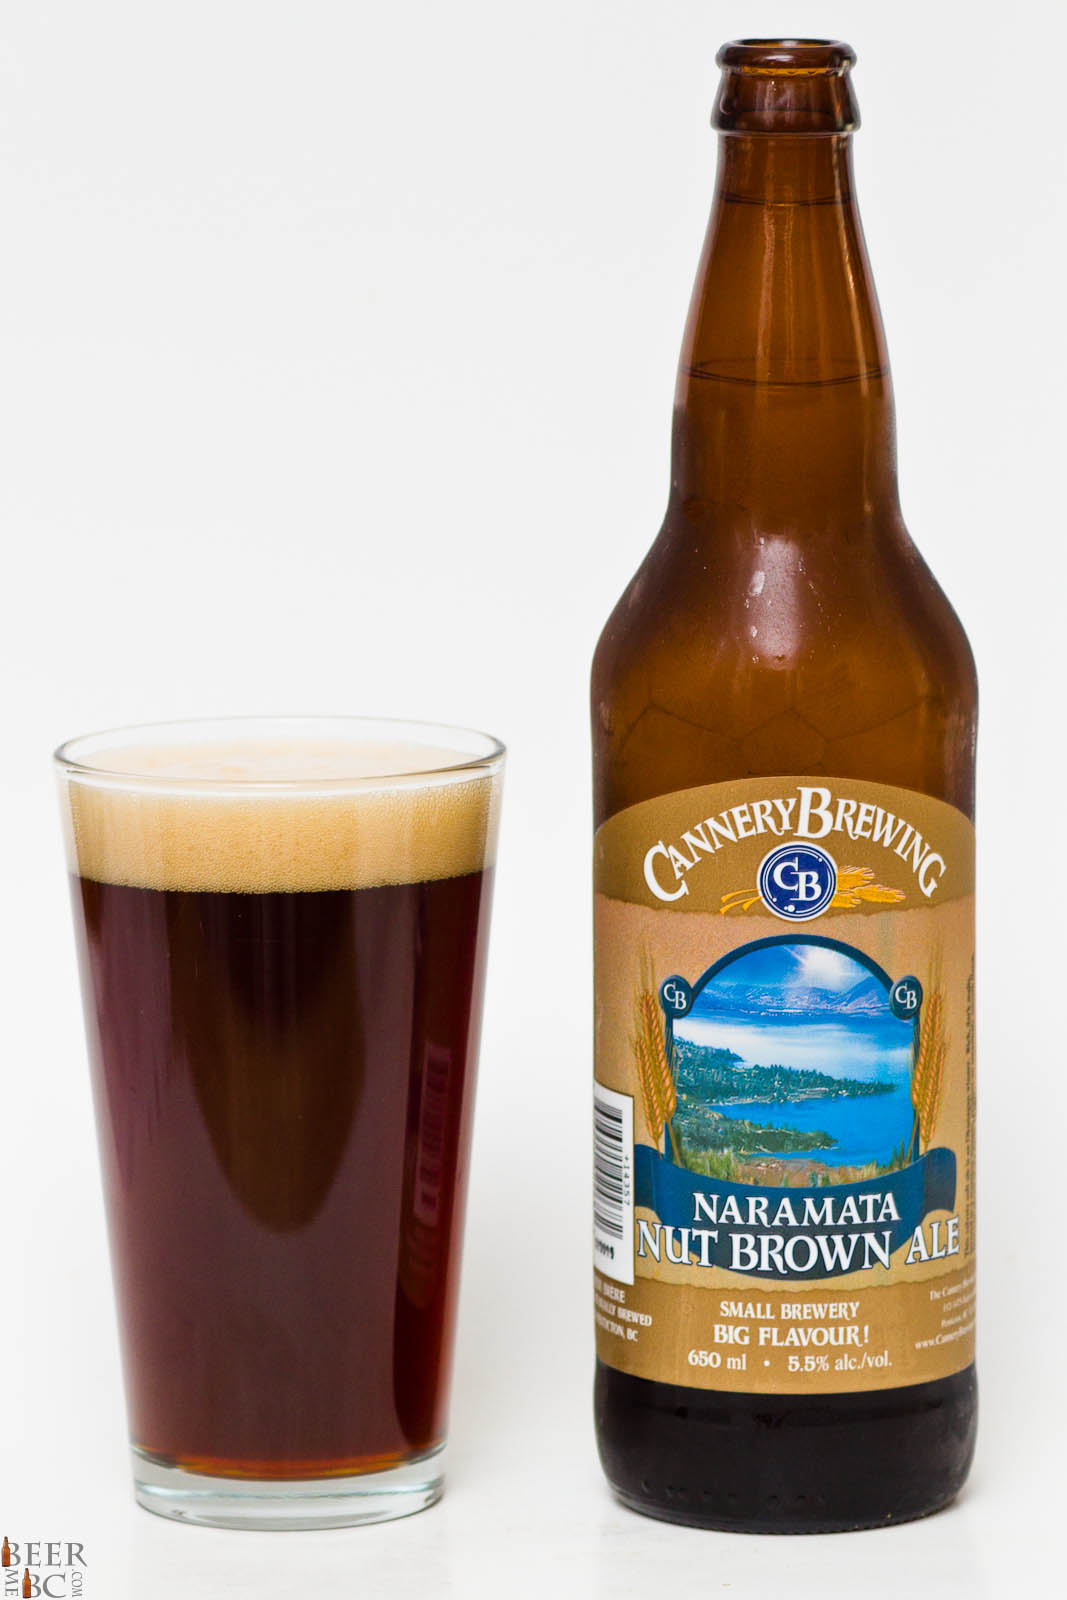 Cannery Brewing Co Naramata Nut Brown Ale Beer Me